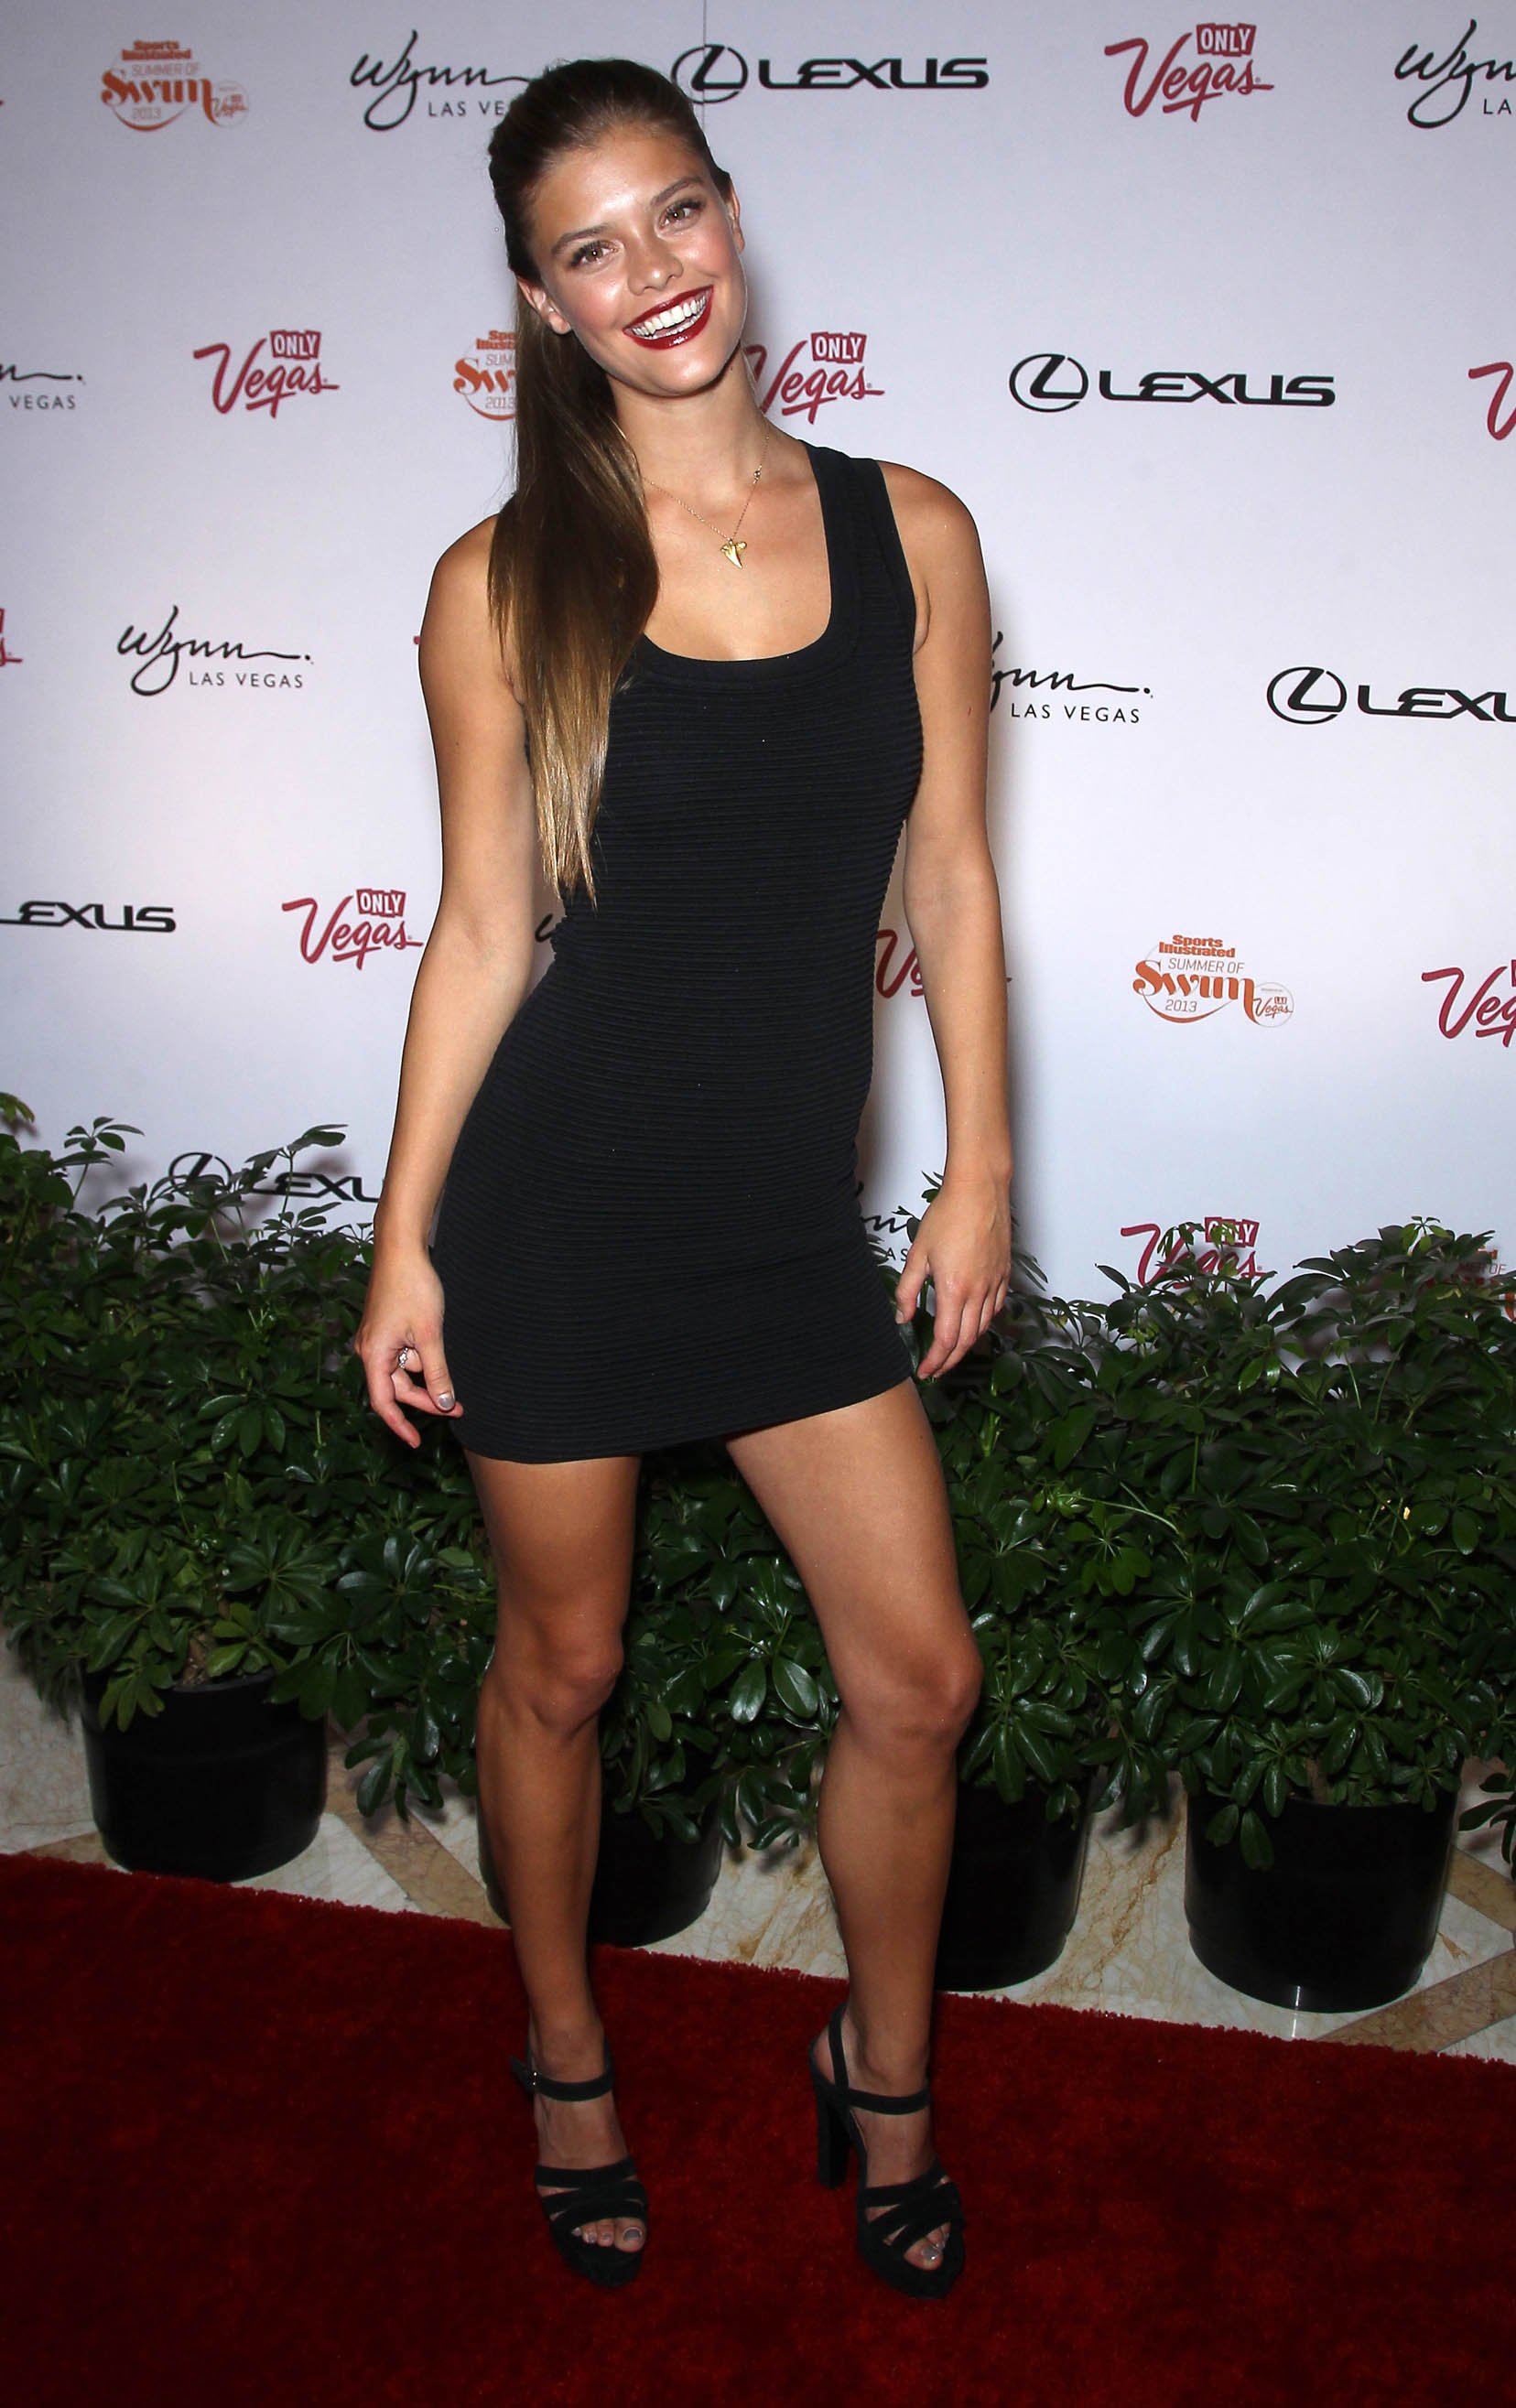 nina-agdal-si-summer-swim-party-at-surrender-vegas-nightclub-june-28-2013-11